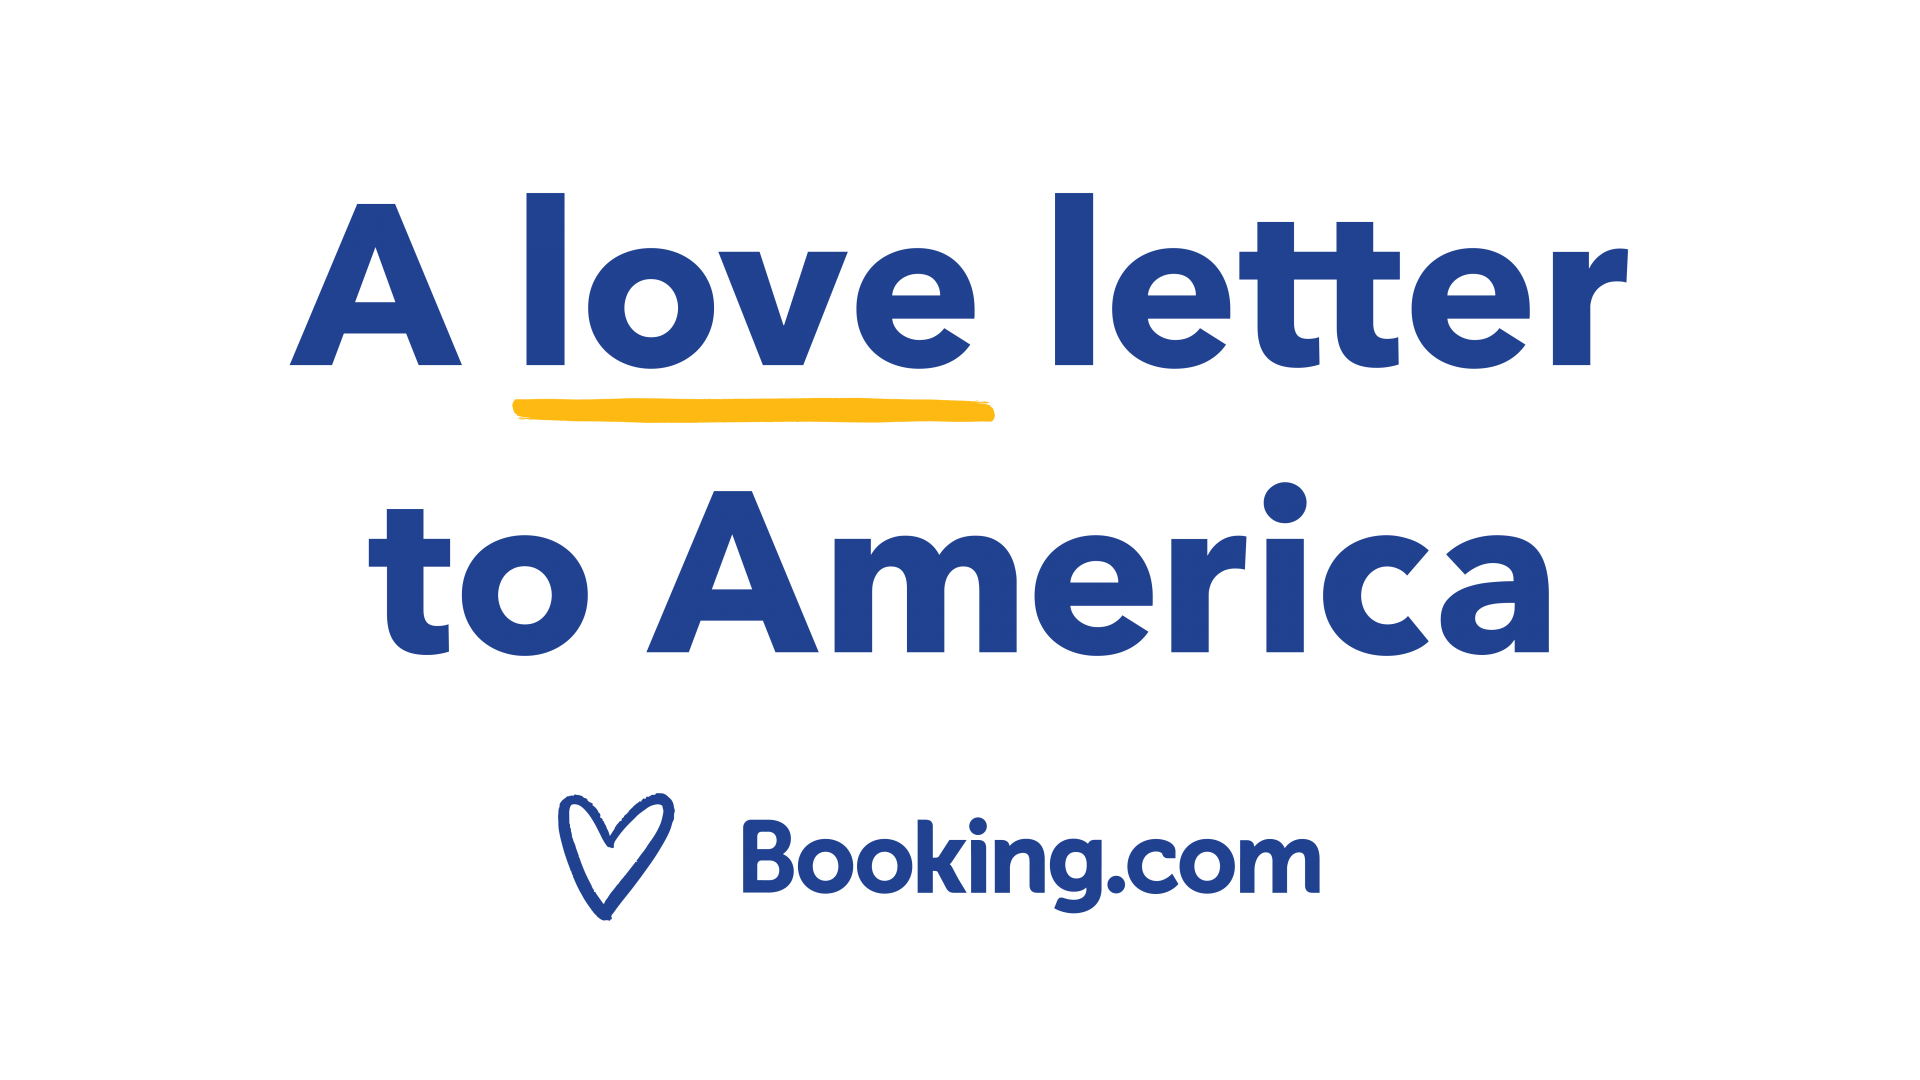 Love Letter to America